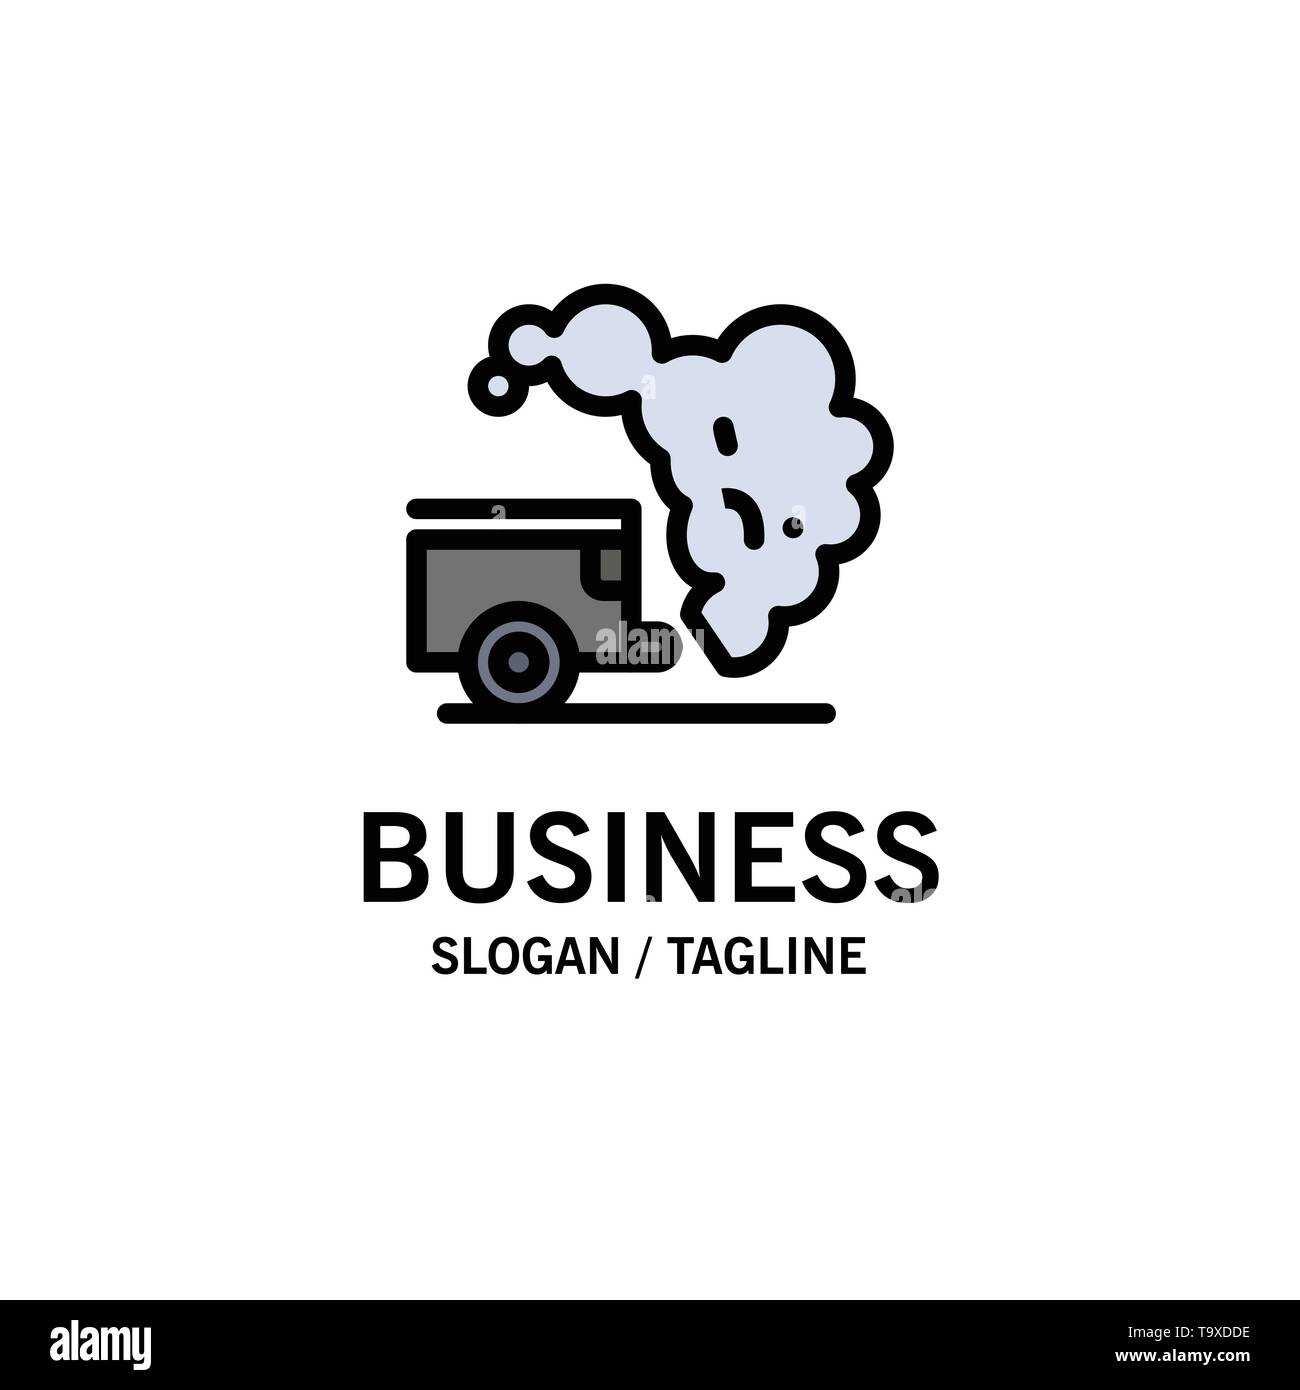 Dump, Environment, Garbage, Pollution Business Logo Template. Flat Color - Stock Image